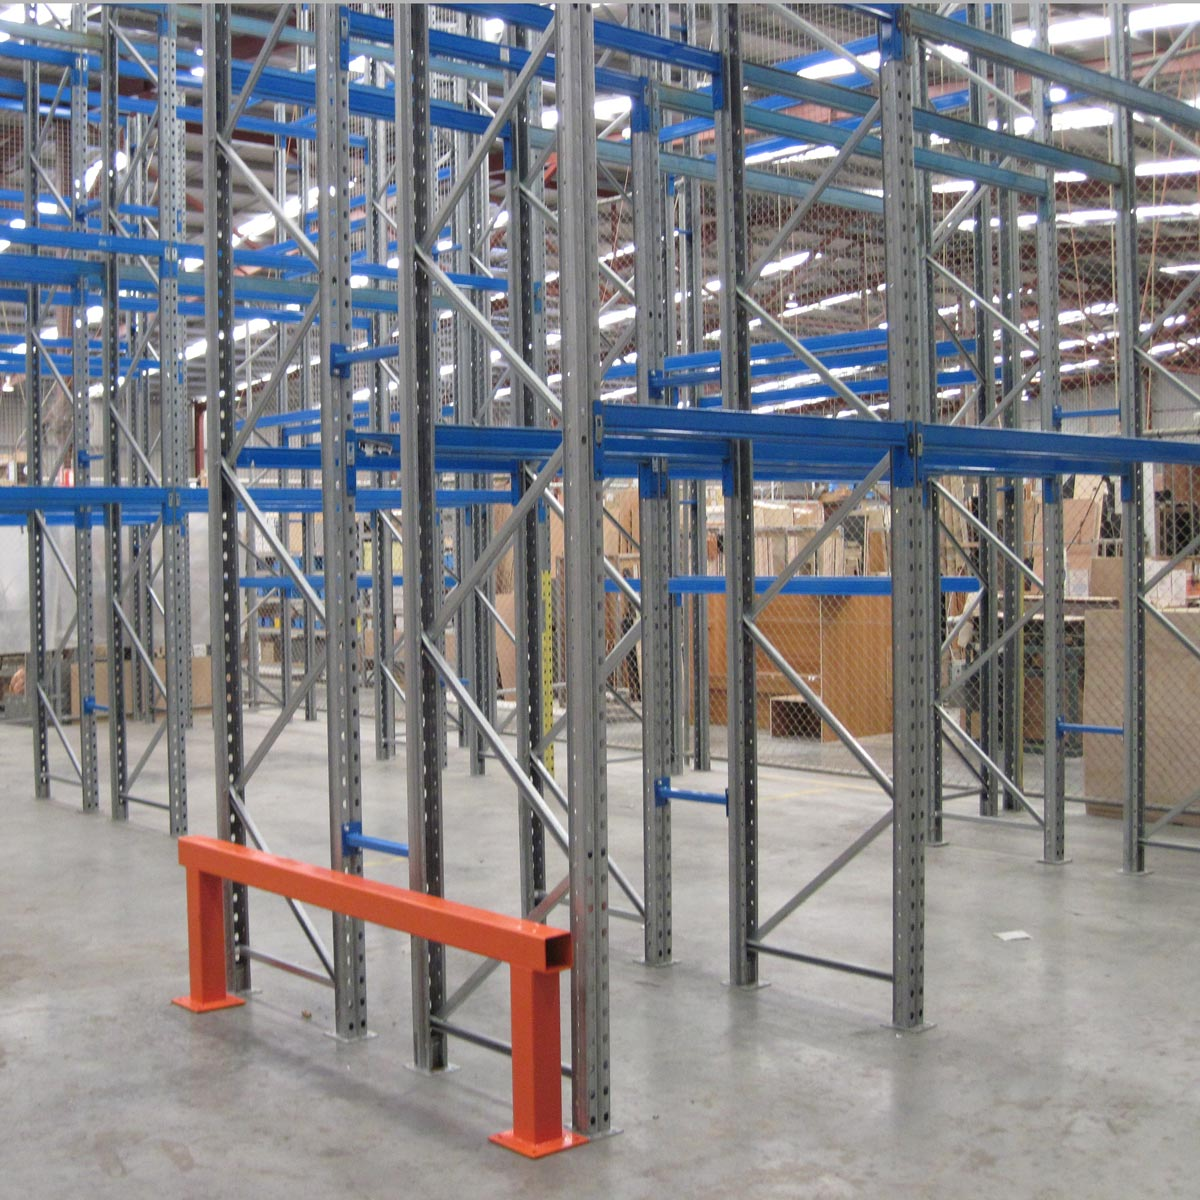 Second Hand Pallet Racking - APC